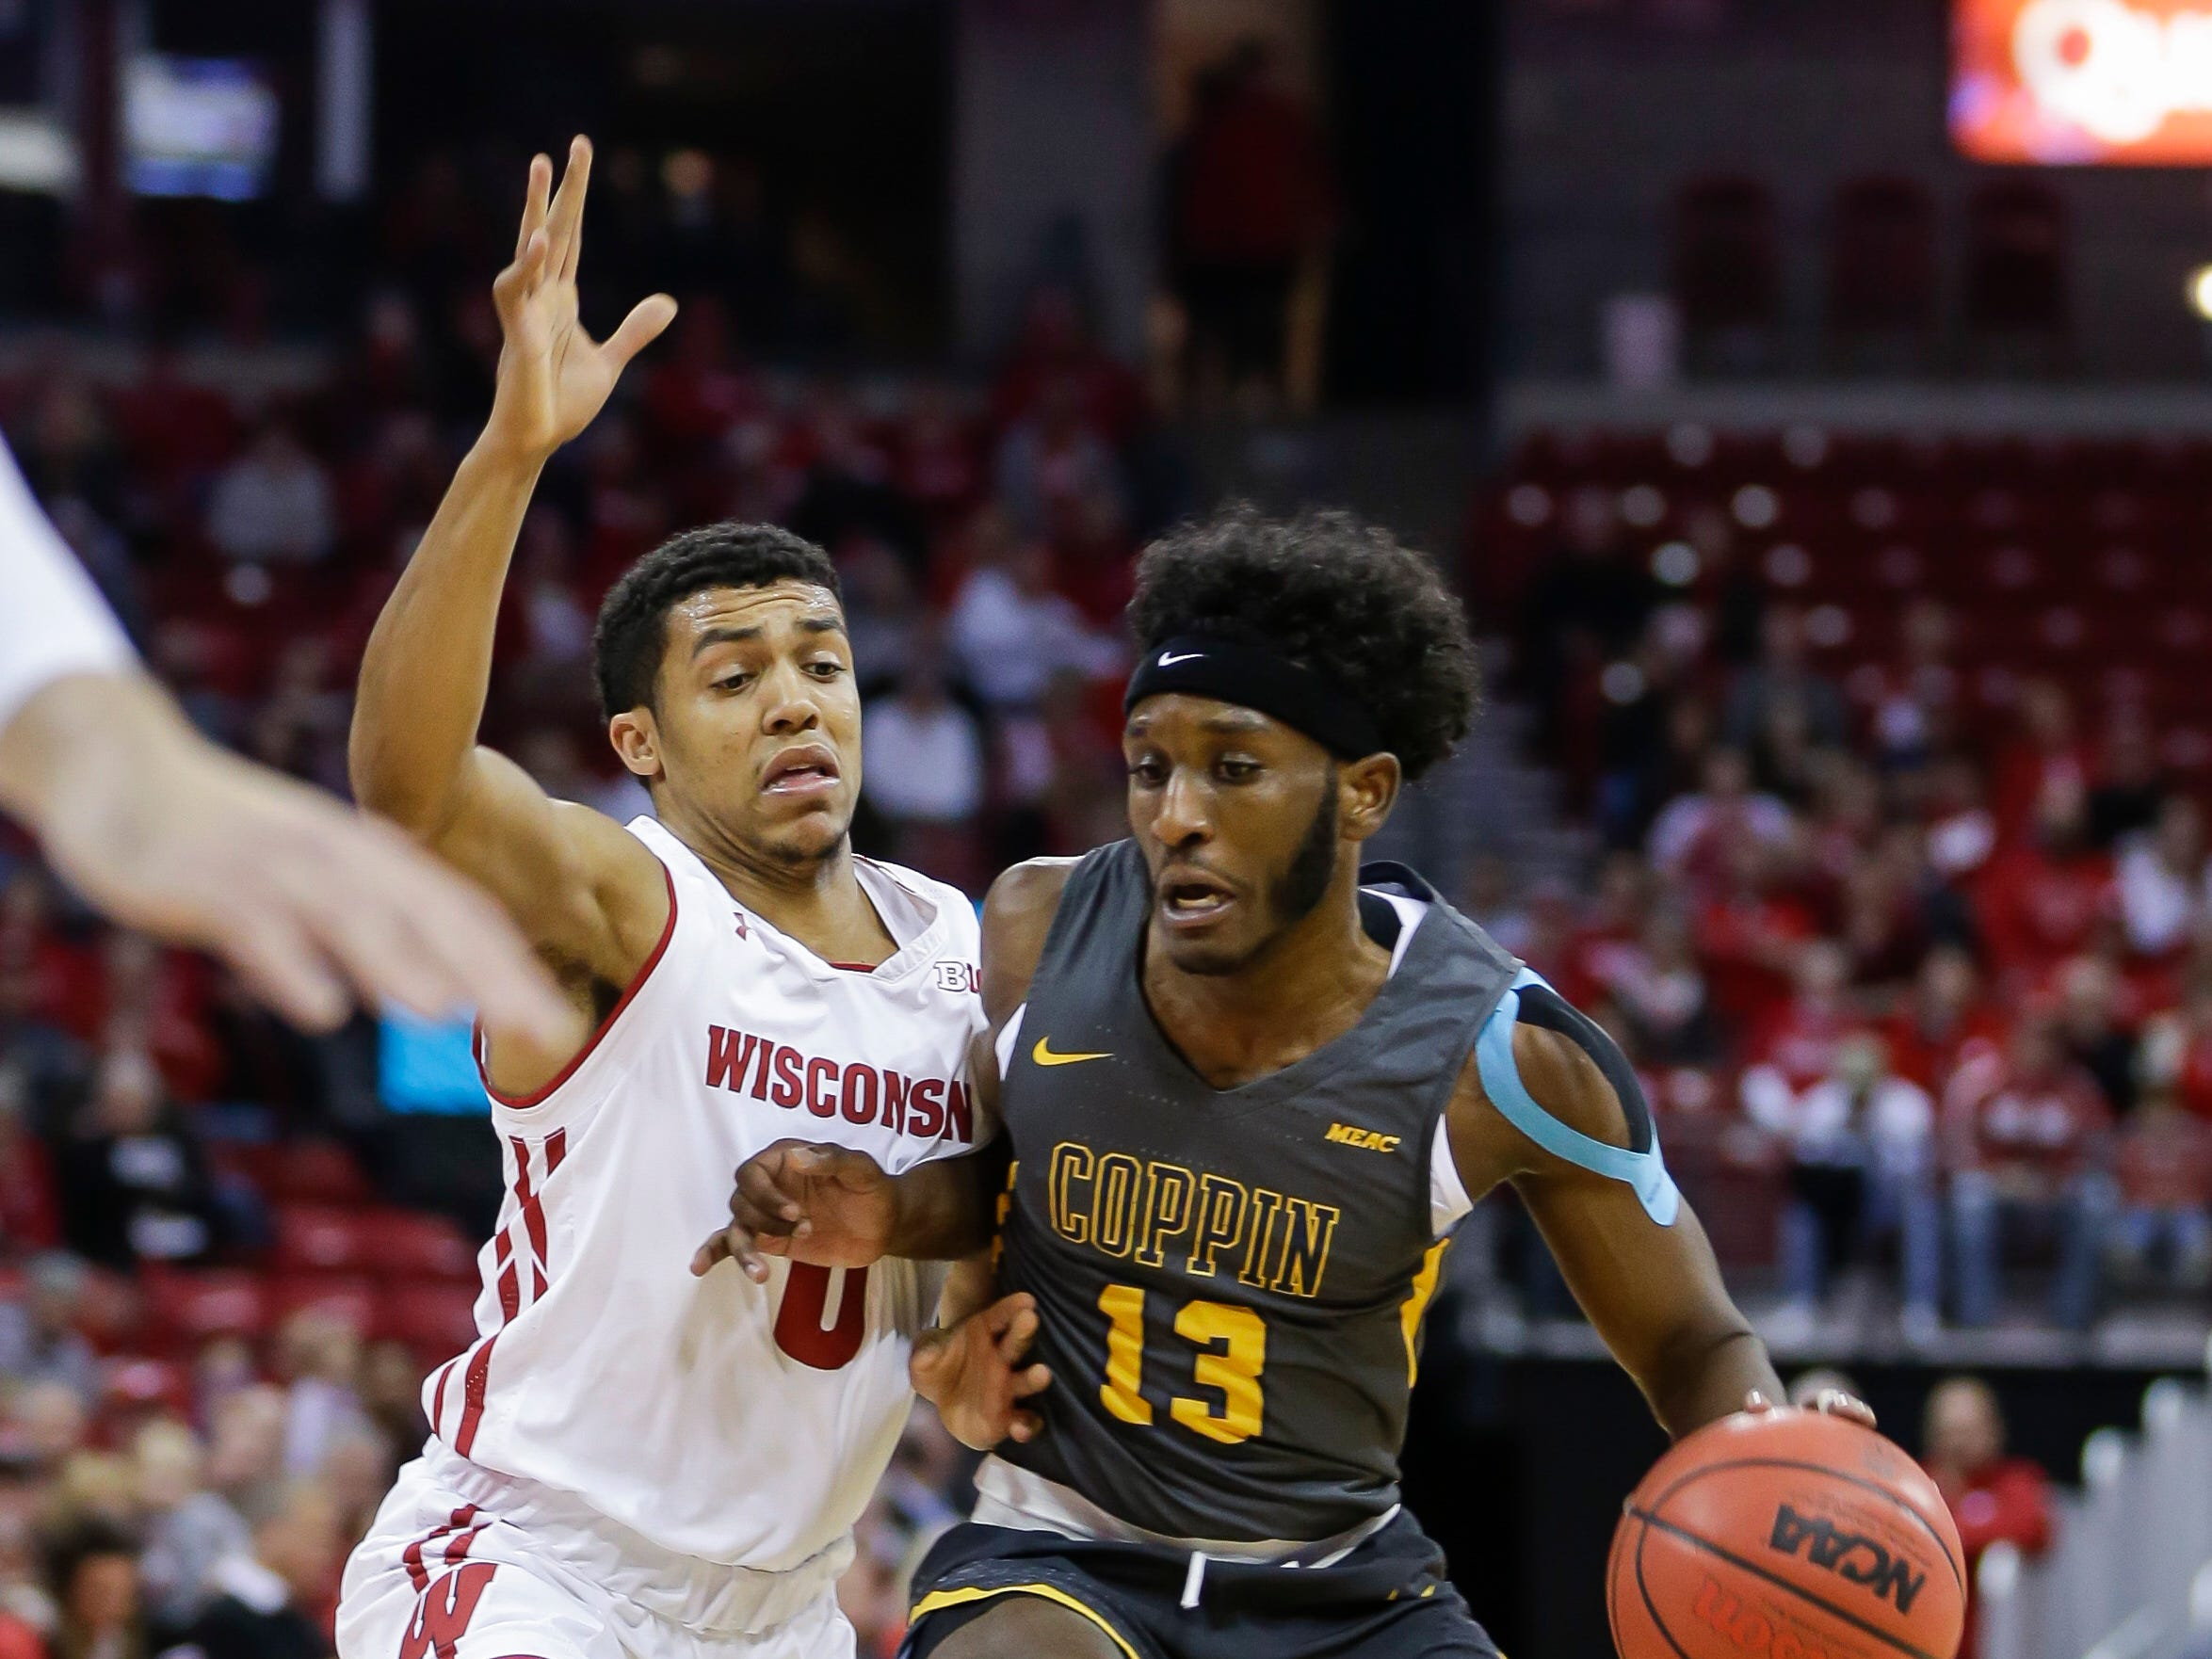 Coppin State's Dejuan Clayton drives on Wisconsin's D'Mitrik Trice.